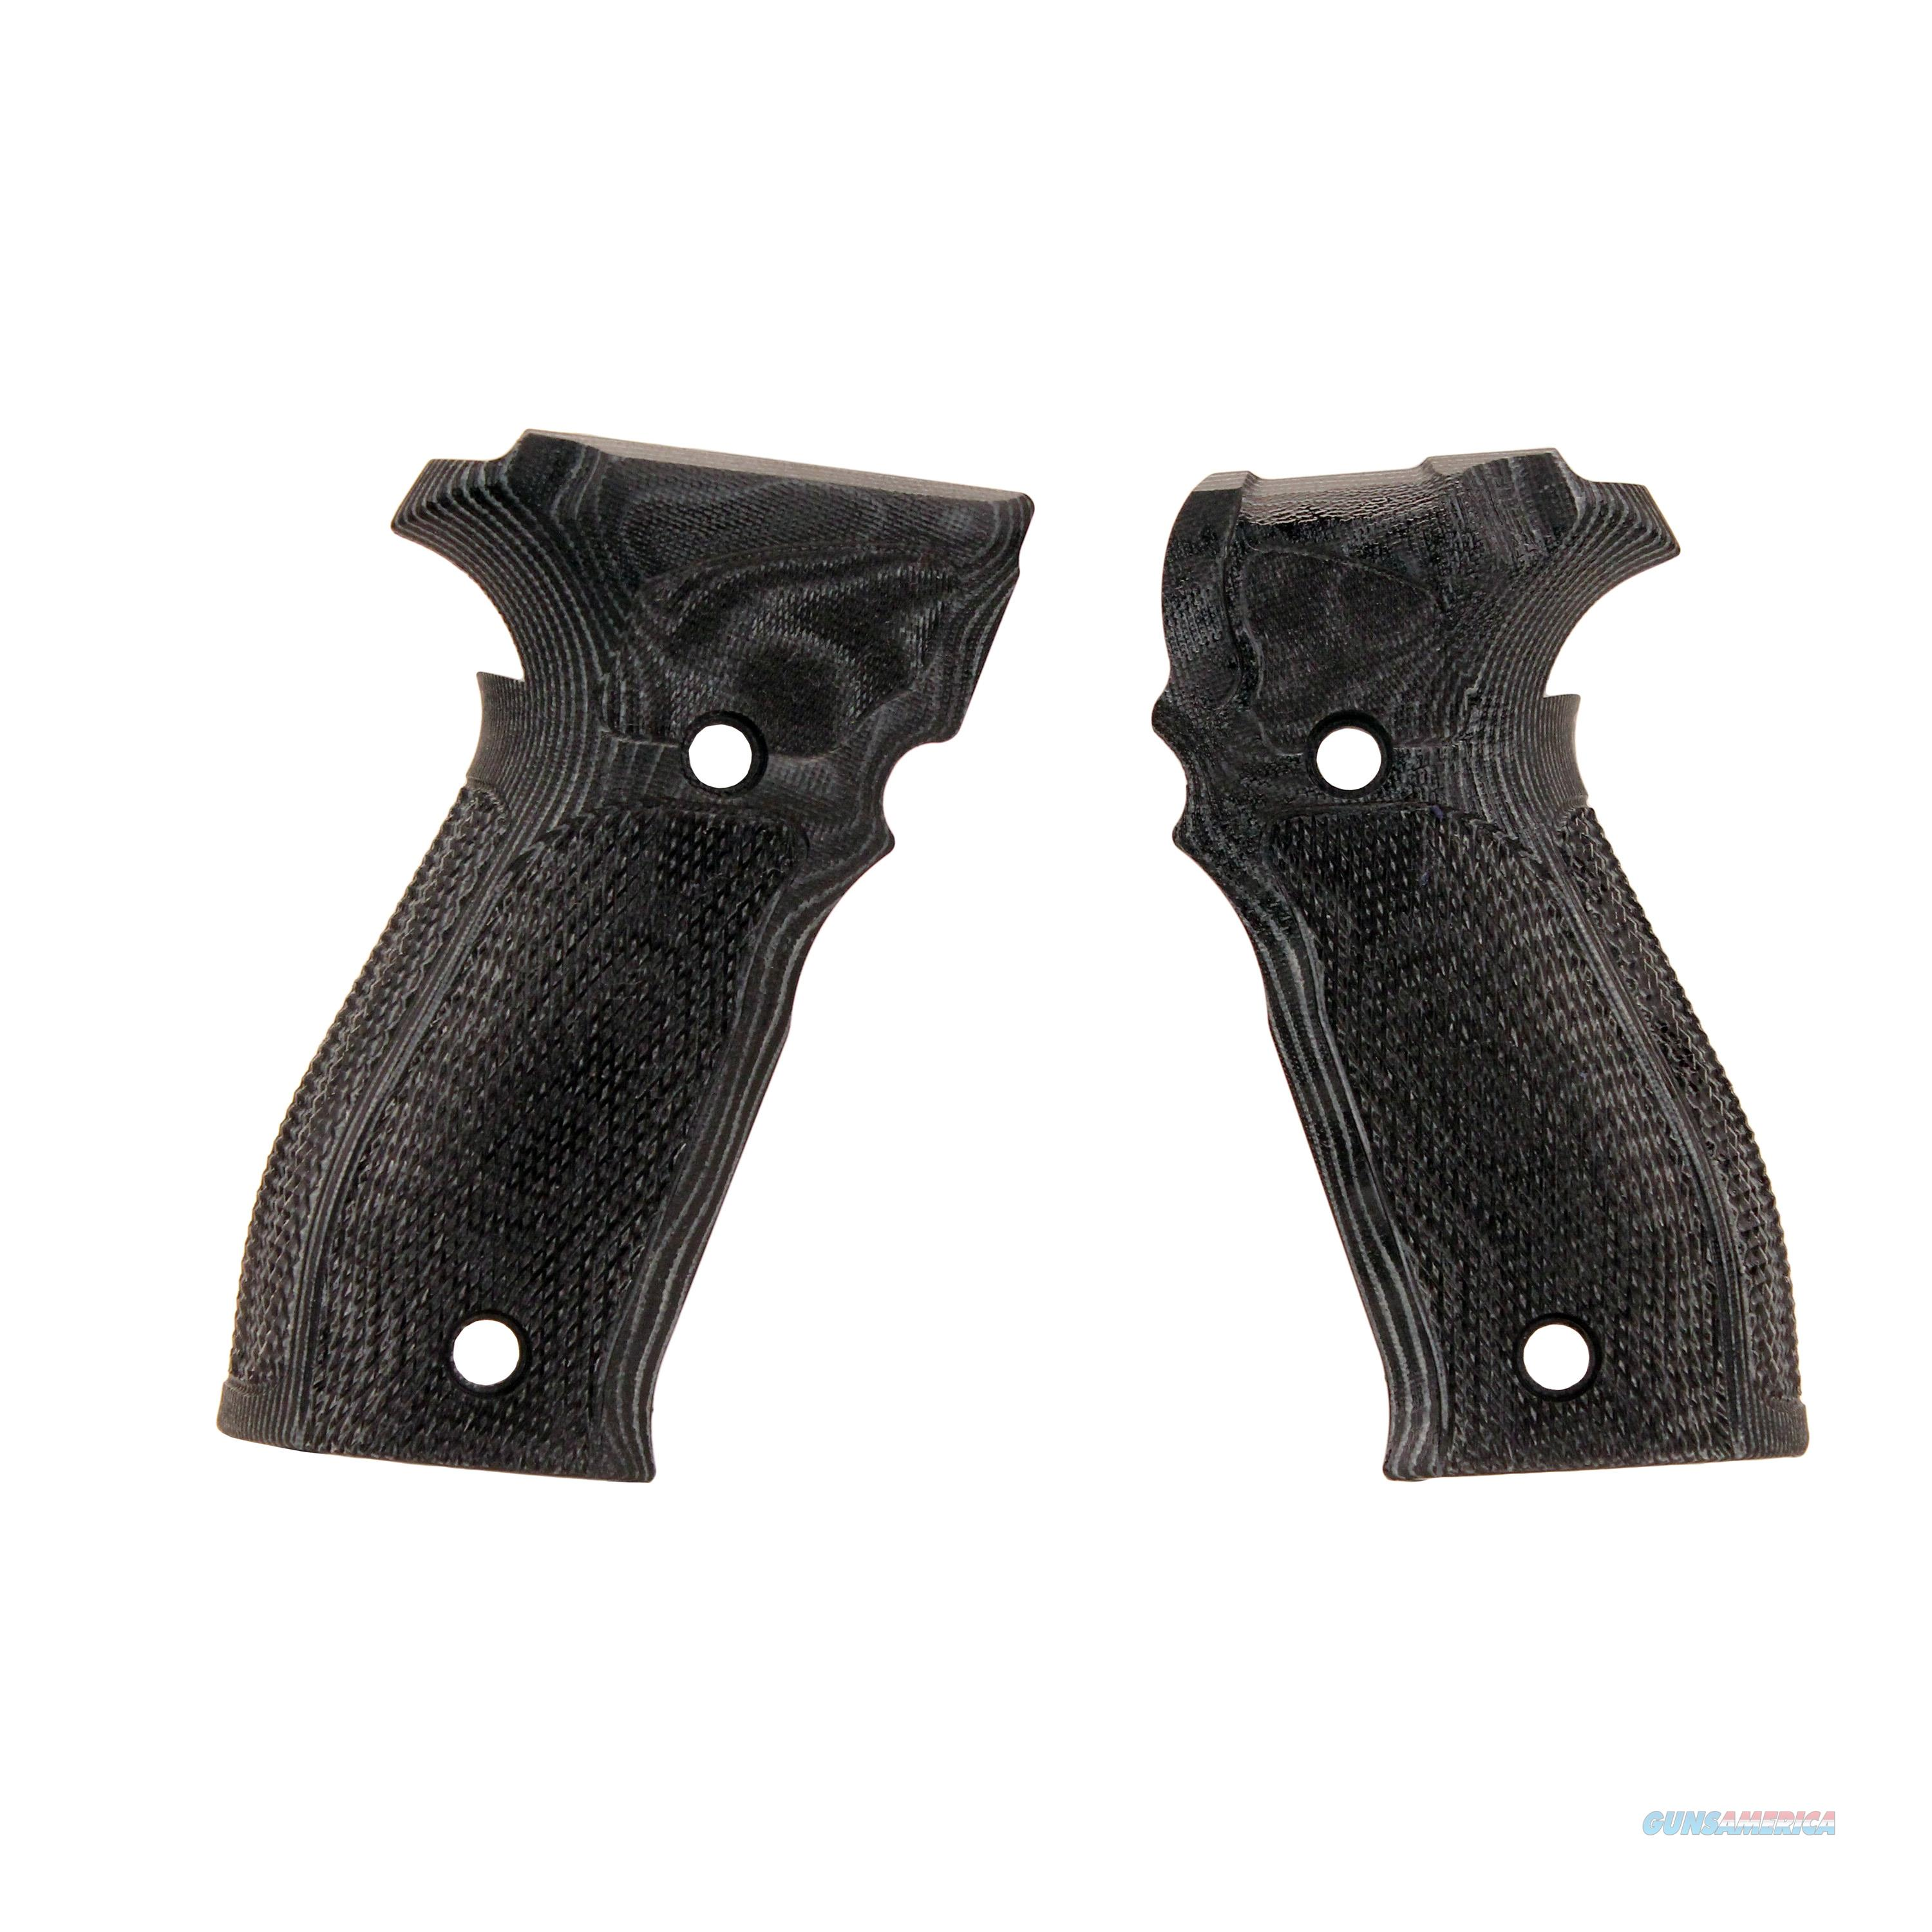 Hogue Sig P226 Grips 23759  Non-Guns > Gunstocks, Grips & Wood